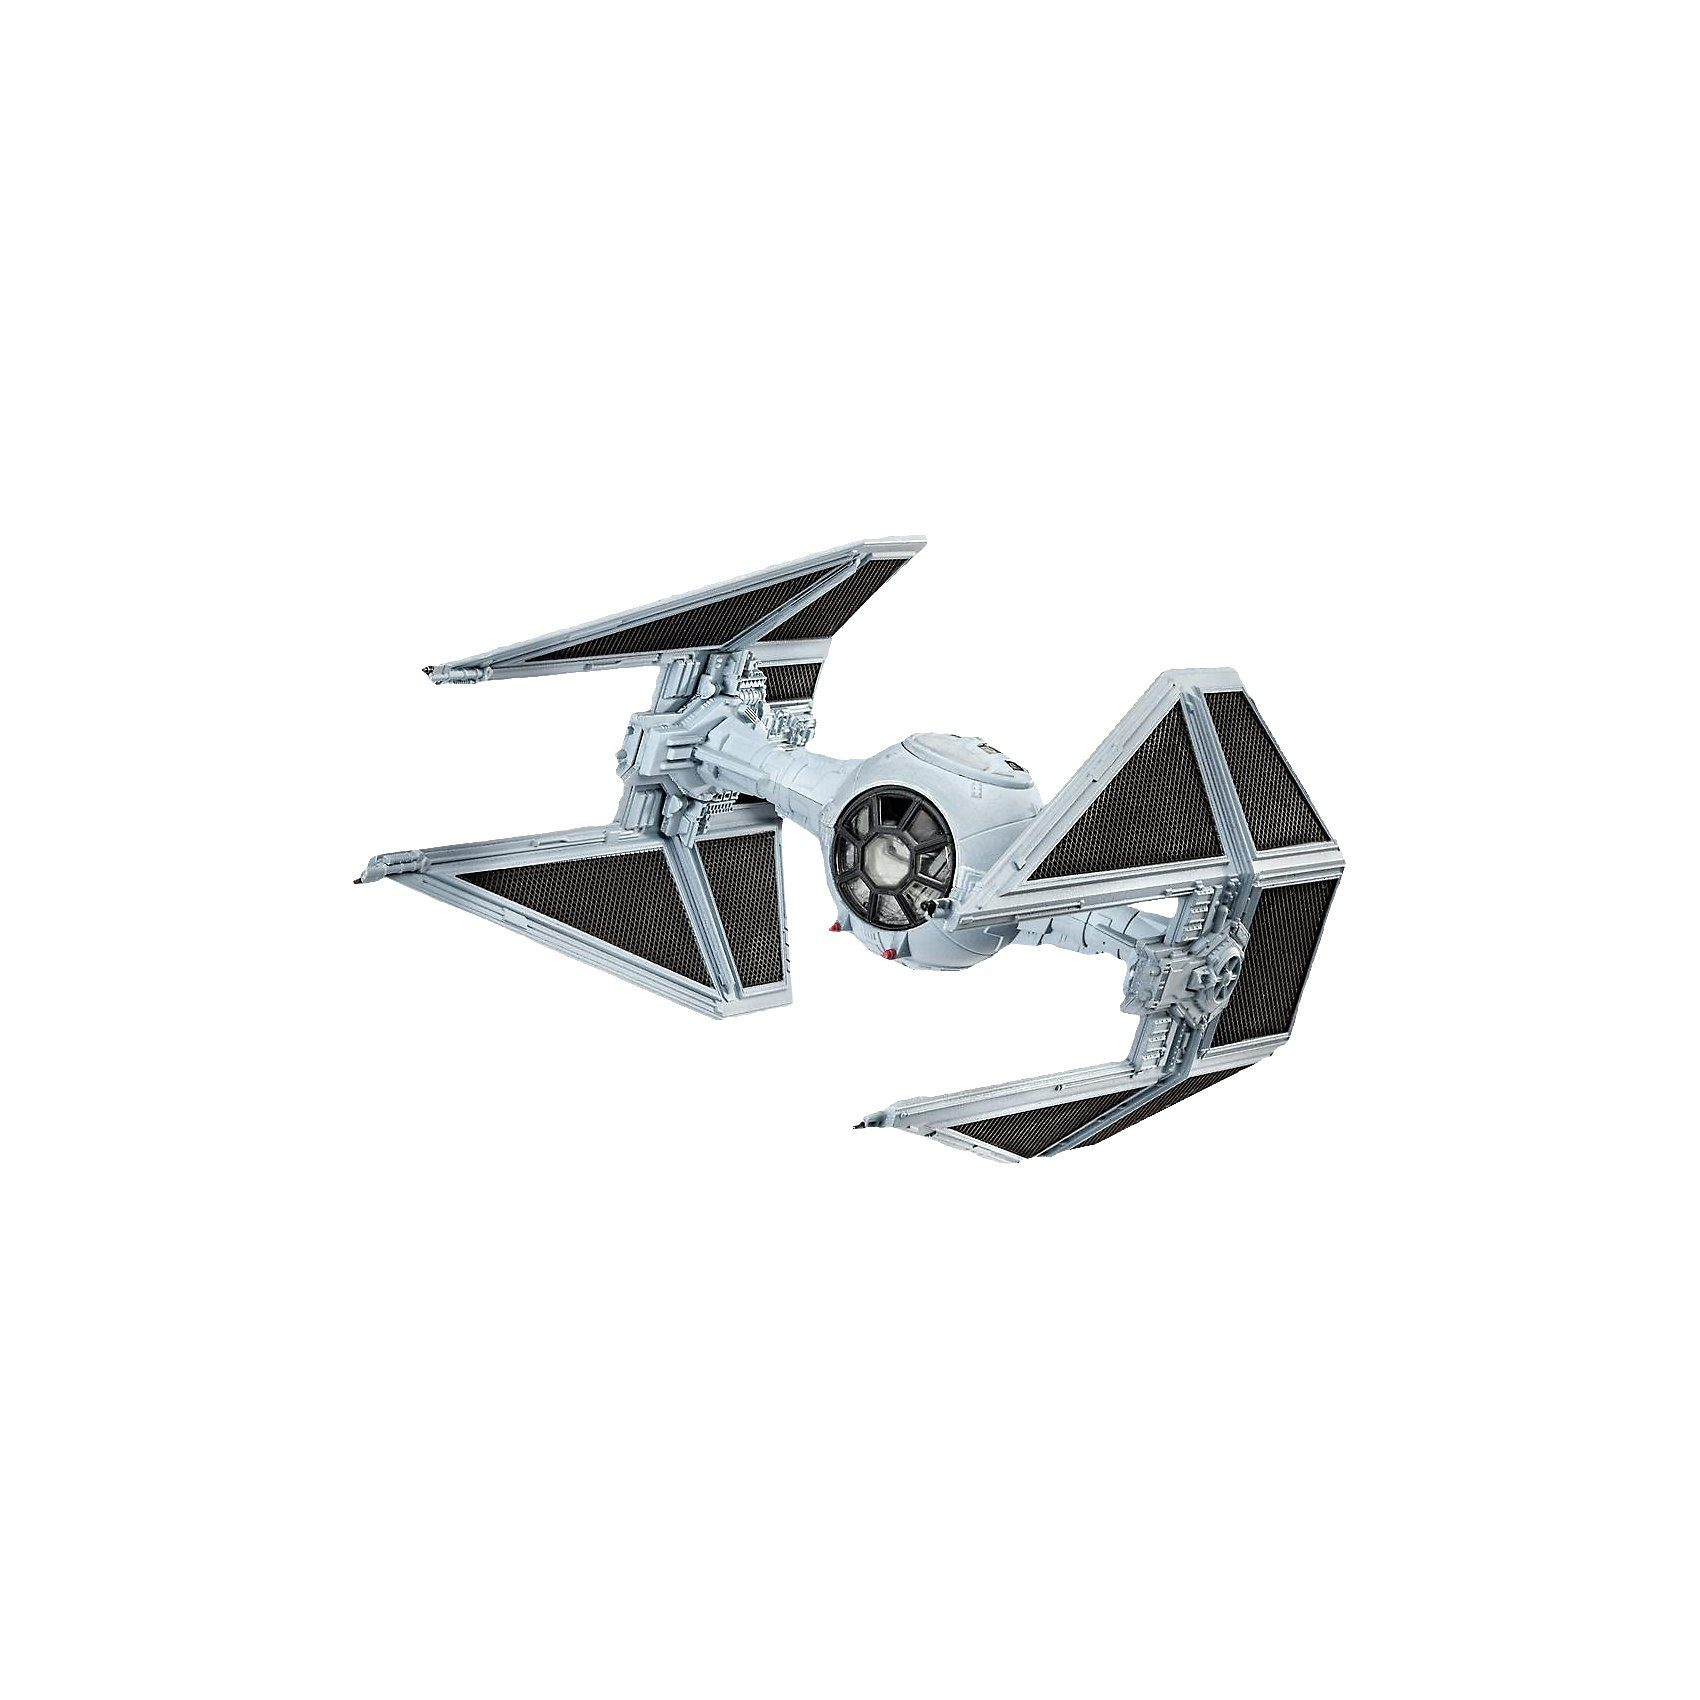 Revell® Modellbausatz Star Wars TIE Interceptor